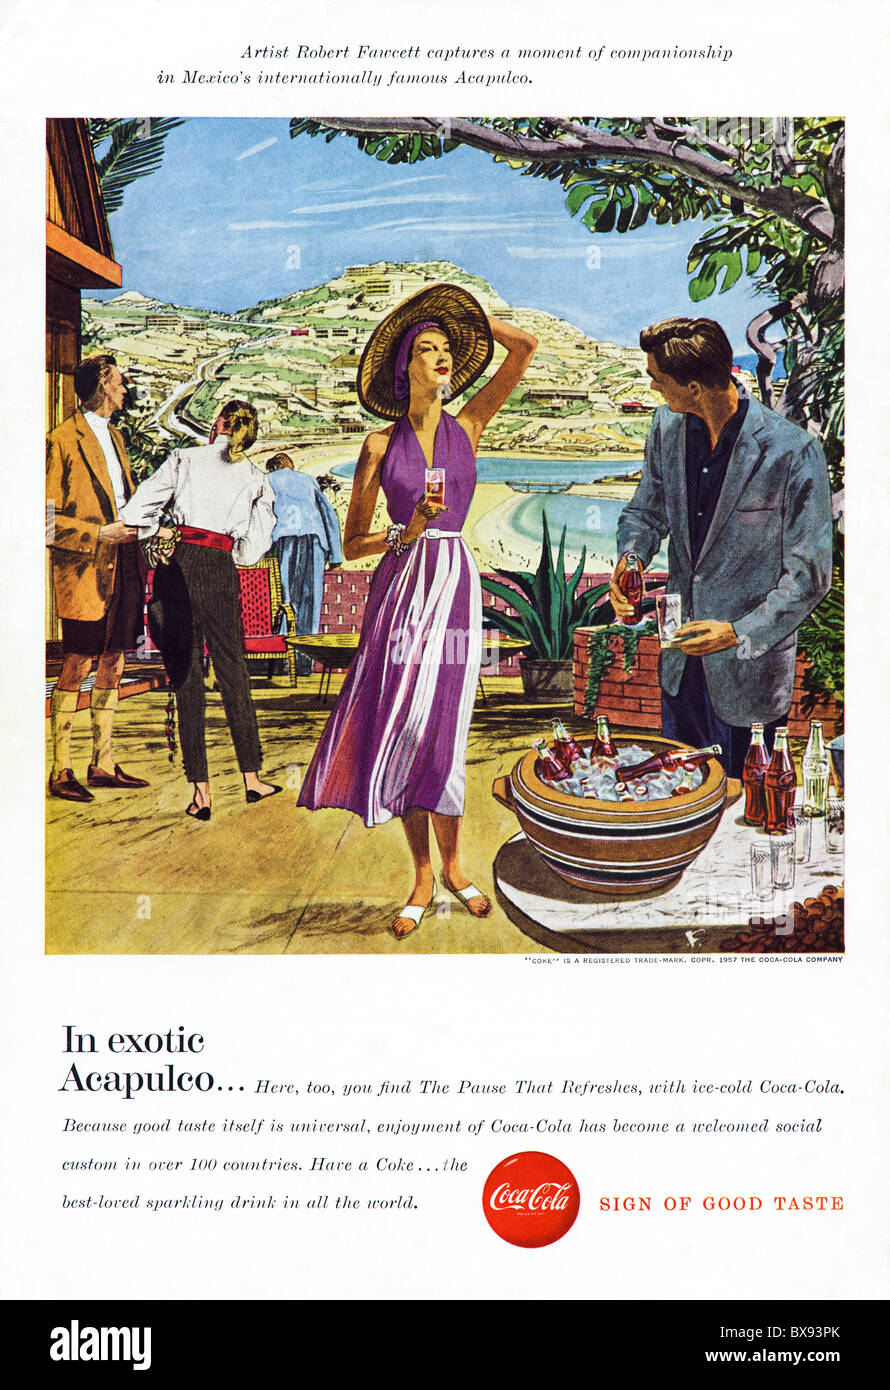 Classic Coca Cola colour advert featuring painting of Acapulco by artist Robert Fawcett in American magazine circa - Stock Image